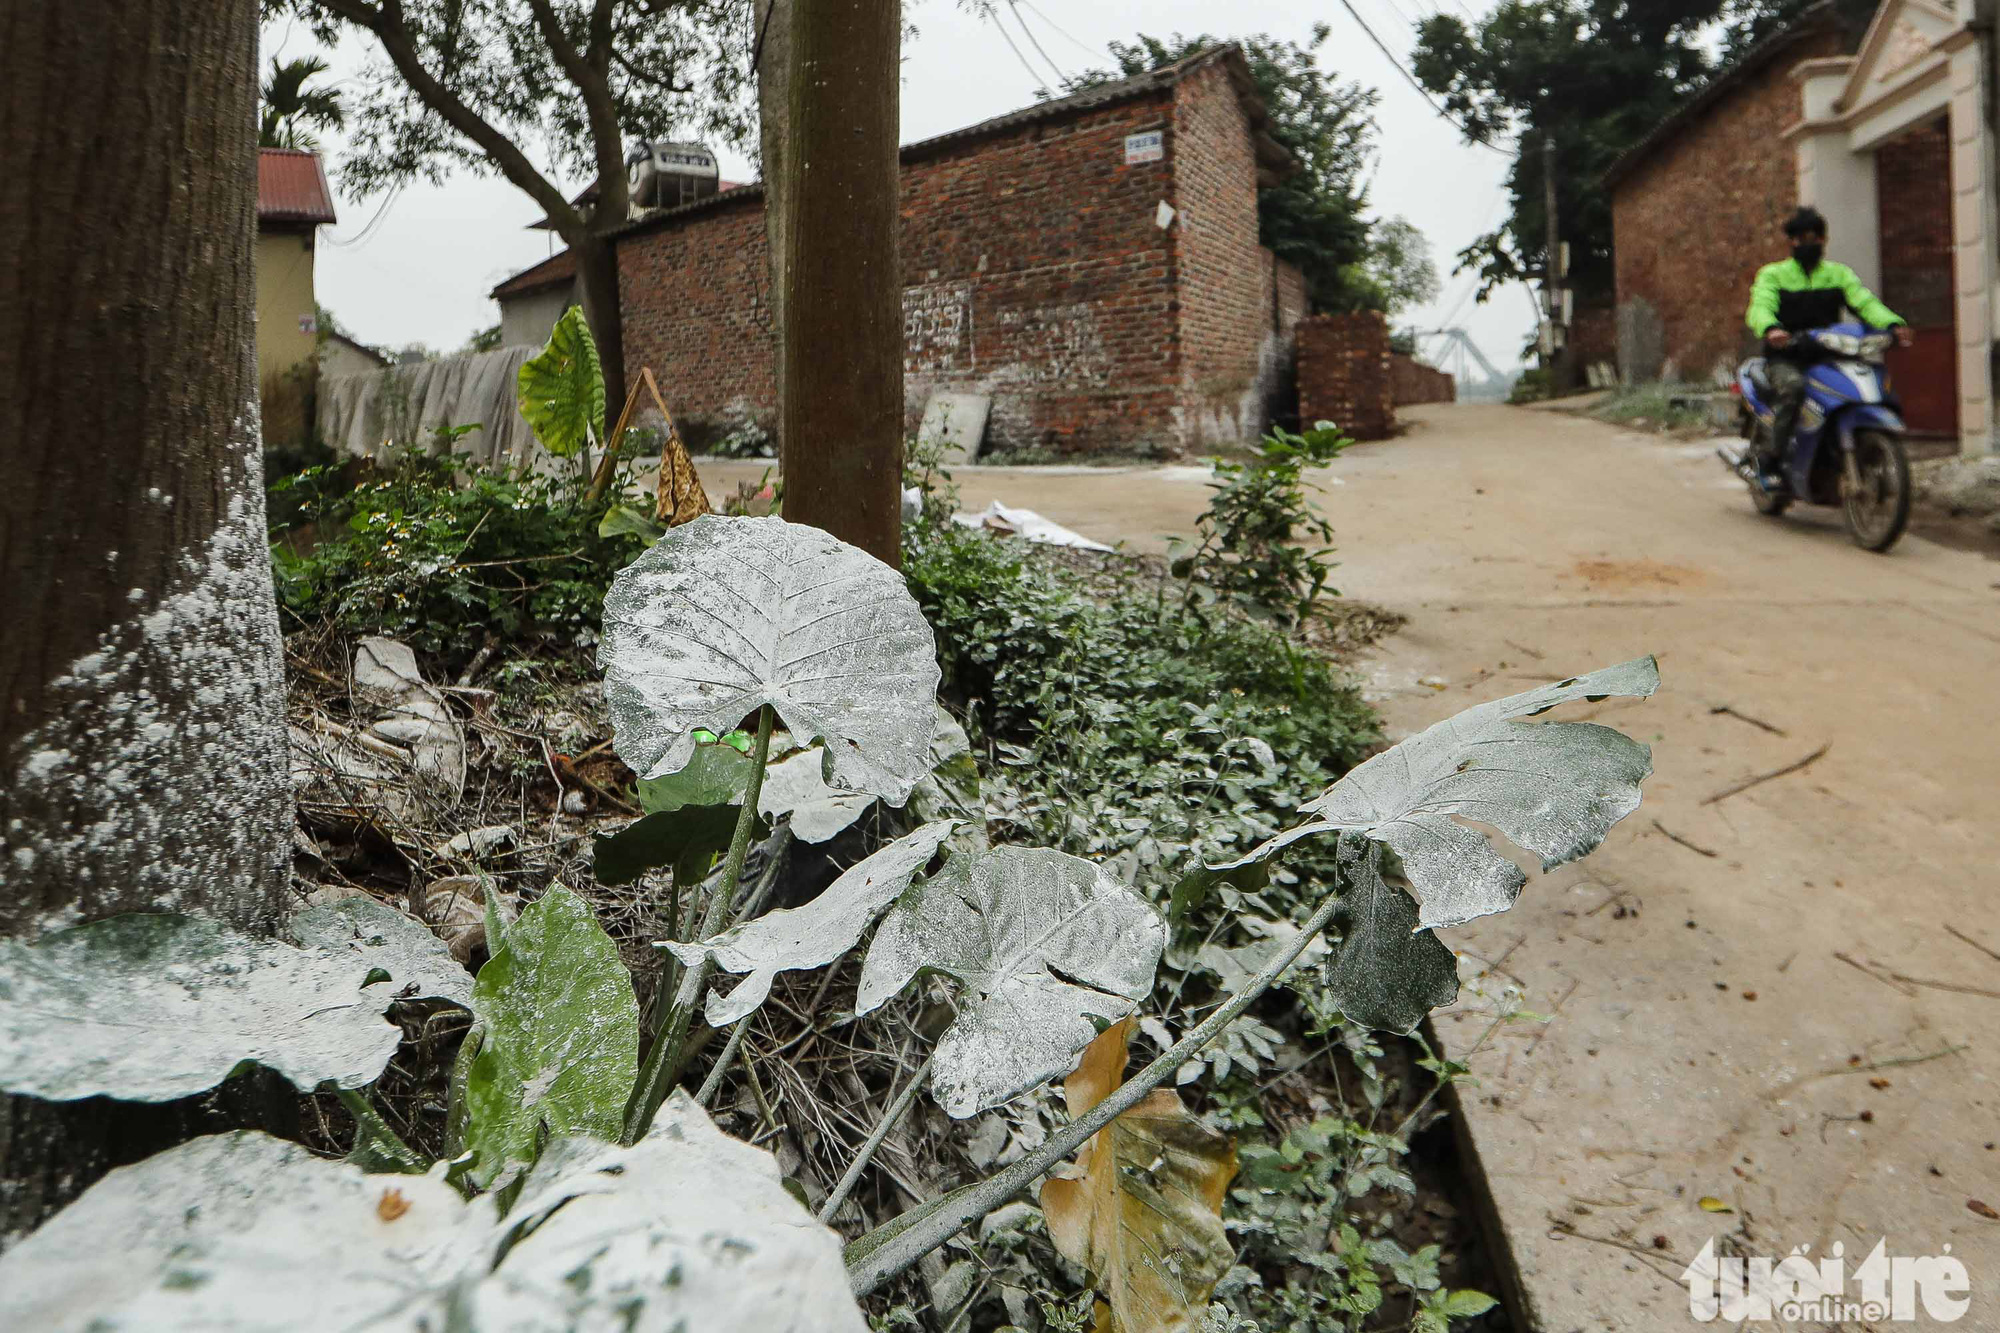 Residue of calcium hydroxide used for disinfection is seen on plants in Ai Van village in Son Loi Commune, Binh Xuyen District, Vinh Phuc Province, Vietnam in this photo taken on February 11, 2020. Photo: Nguyen Khanh / Tuoi Tre